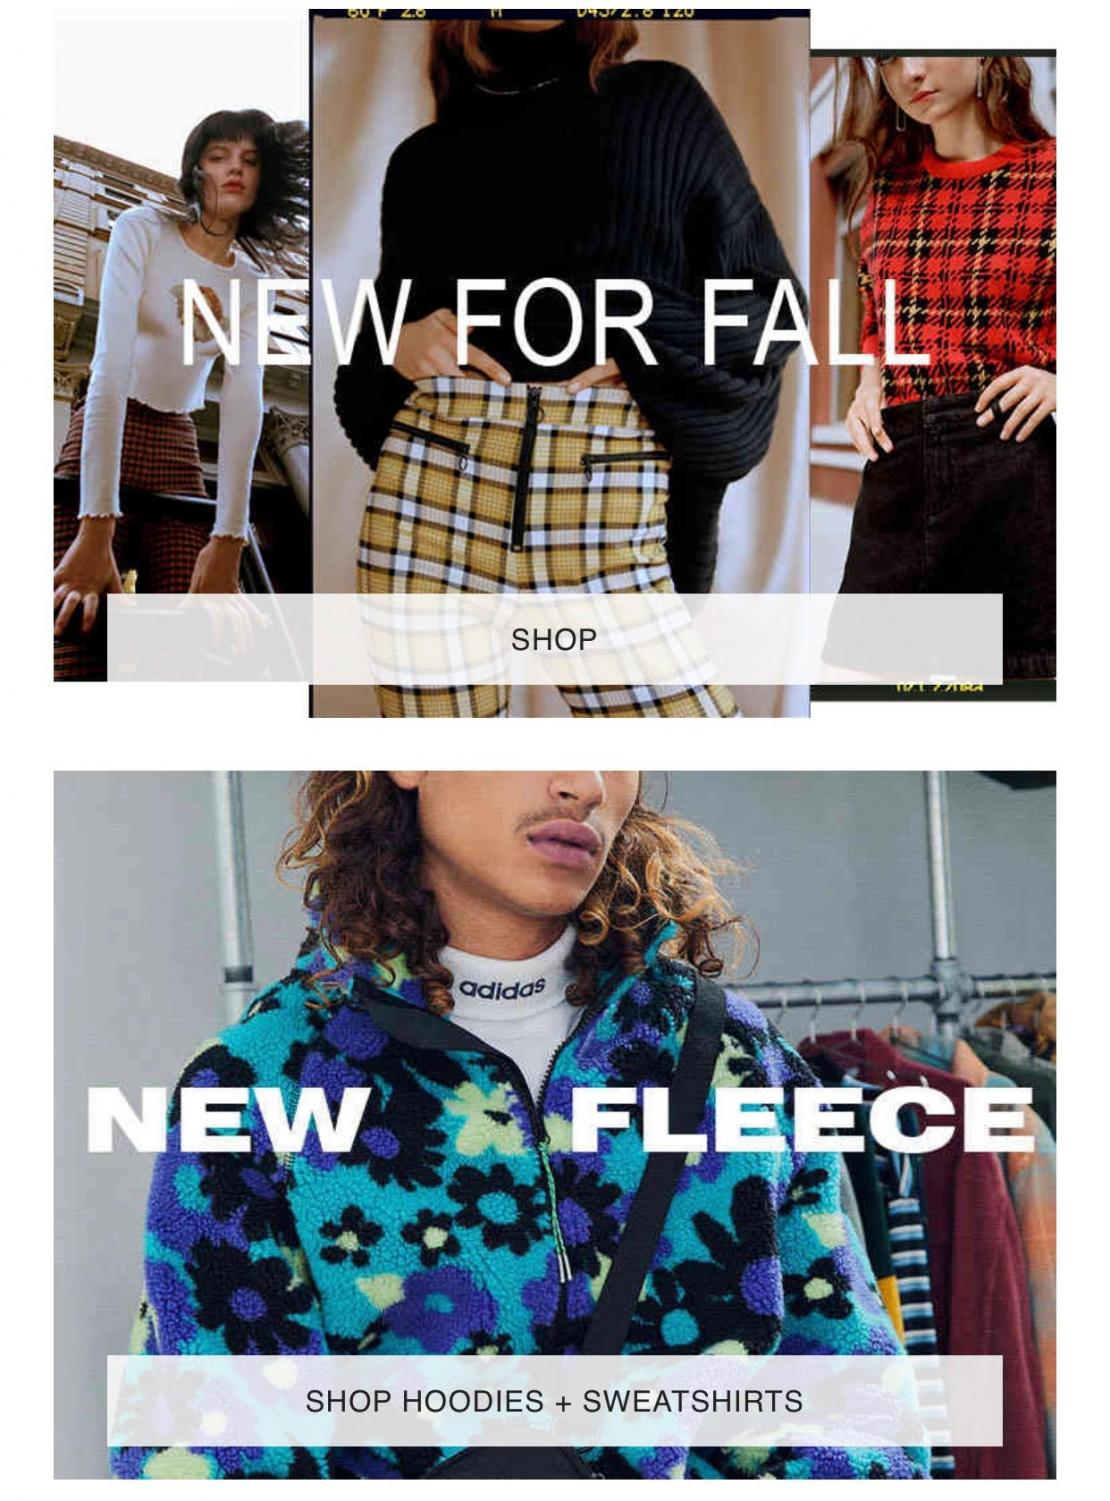 An image taken of the home page of the popular clothing store, Urban Outfitters. The clothing displayed is very reminiscent of some 80s and 90s styles.